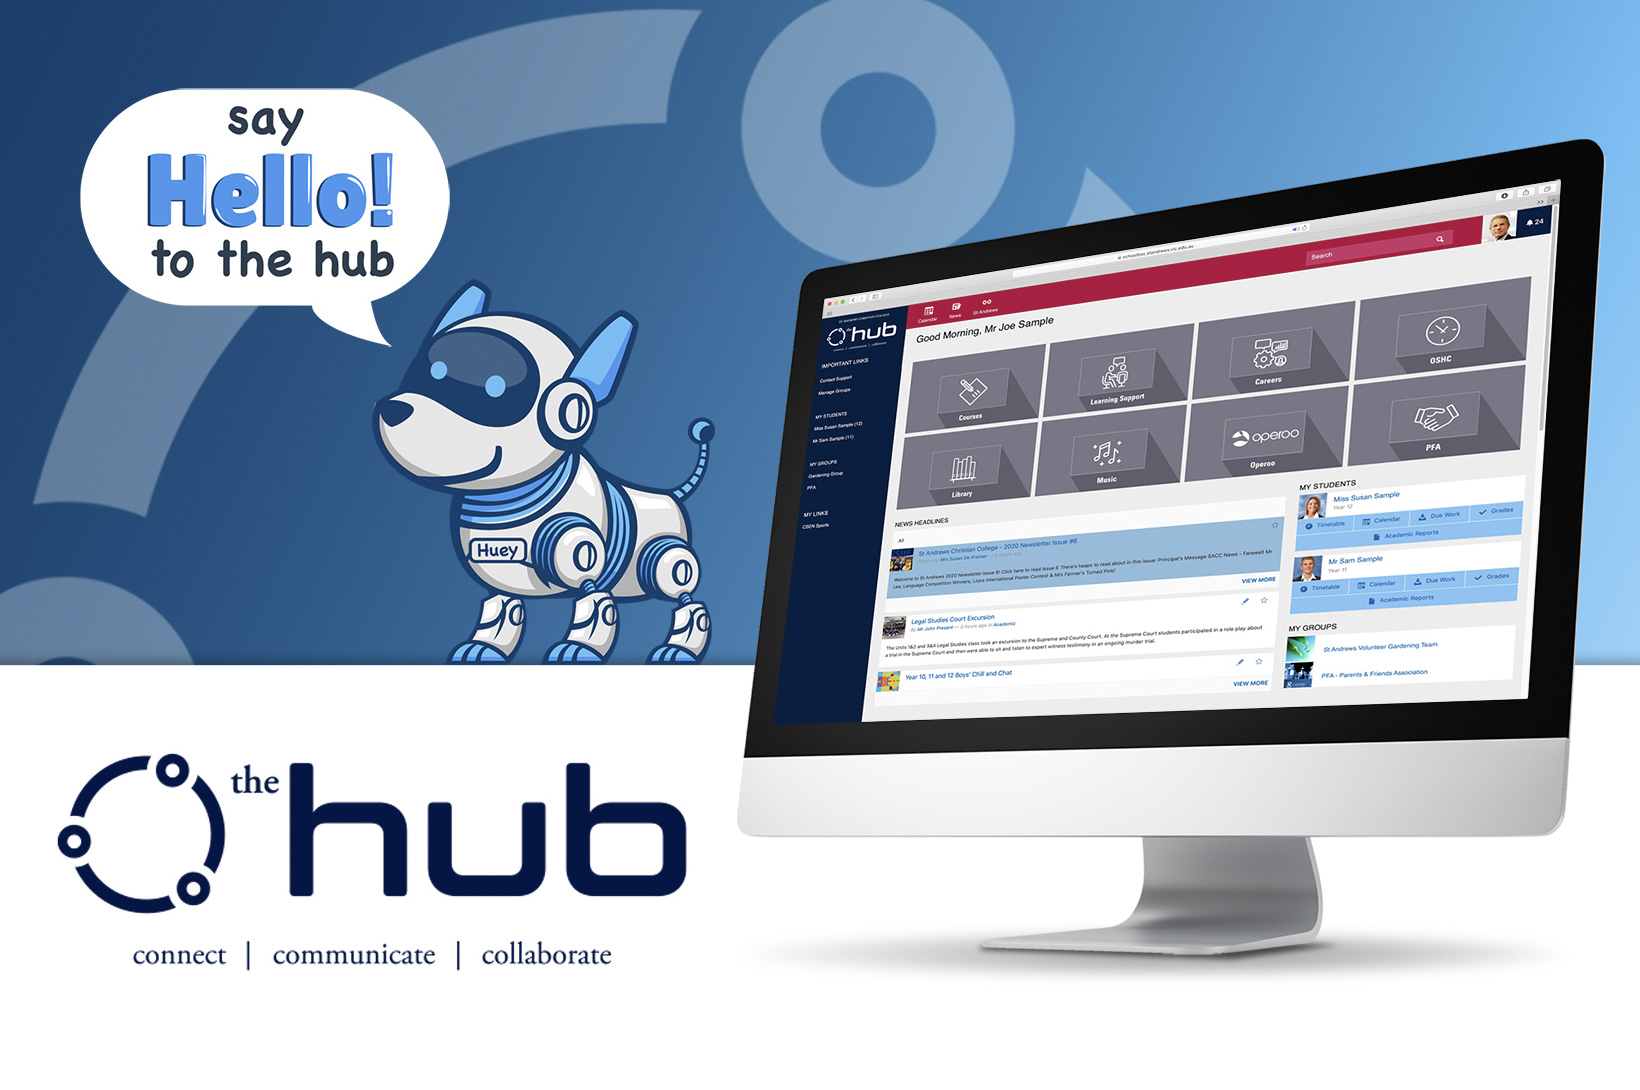 Say Hello to 'the hub'